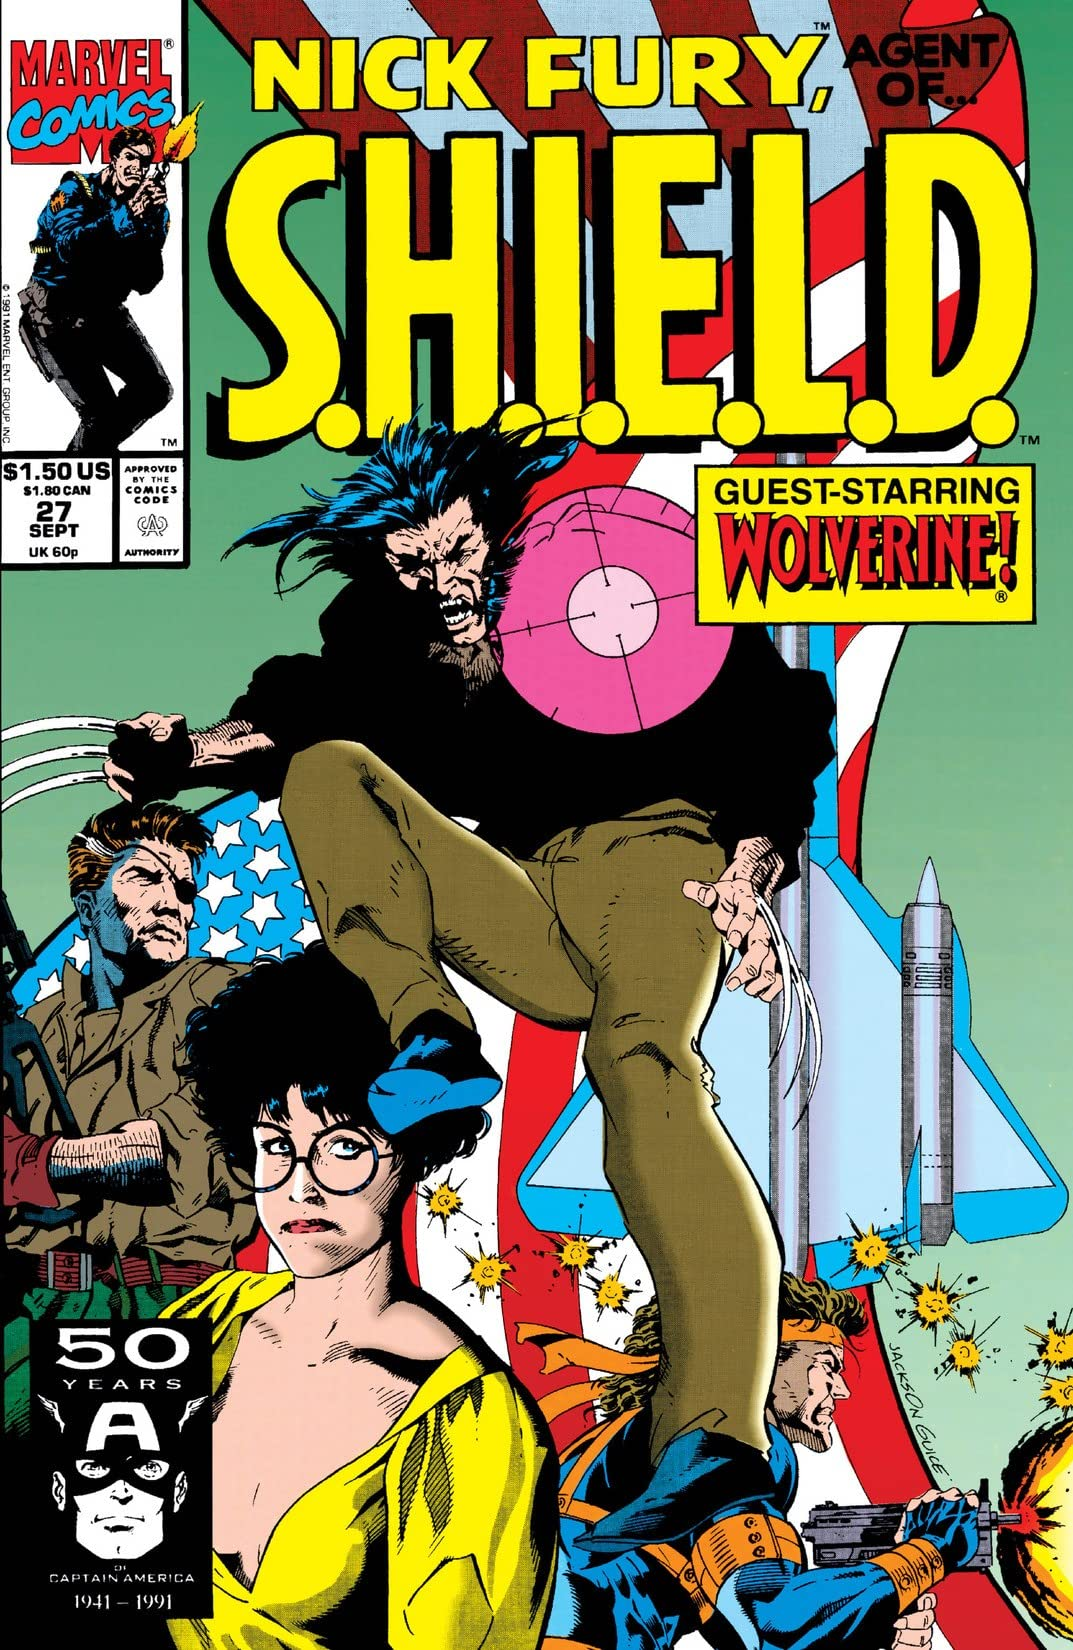 Nick Fury, Agent of S.H.I.E.L.D. (1989-1992) #27